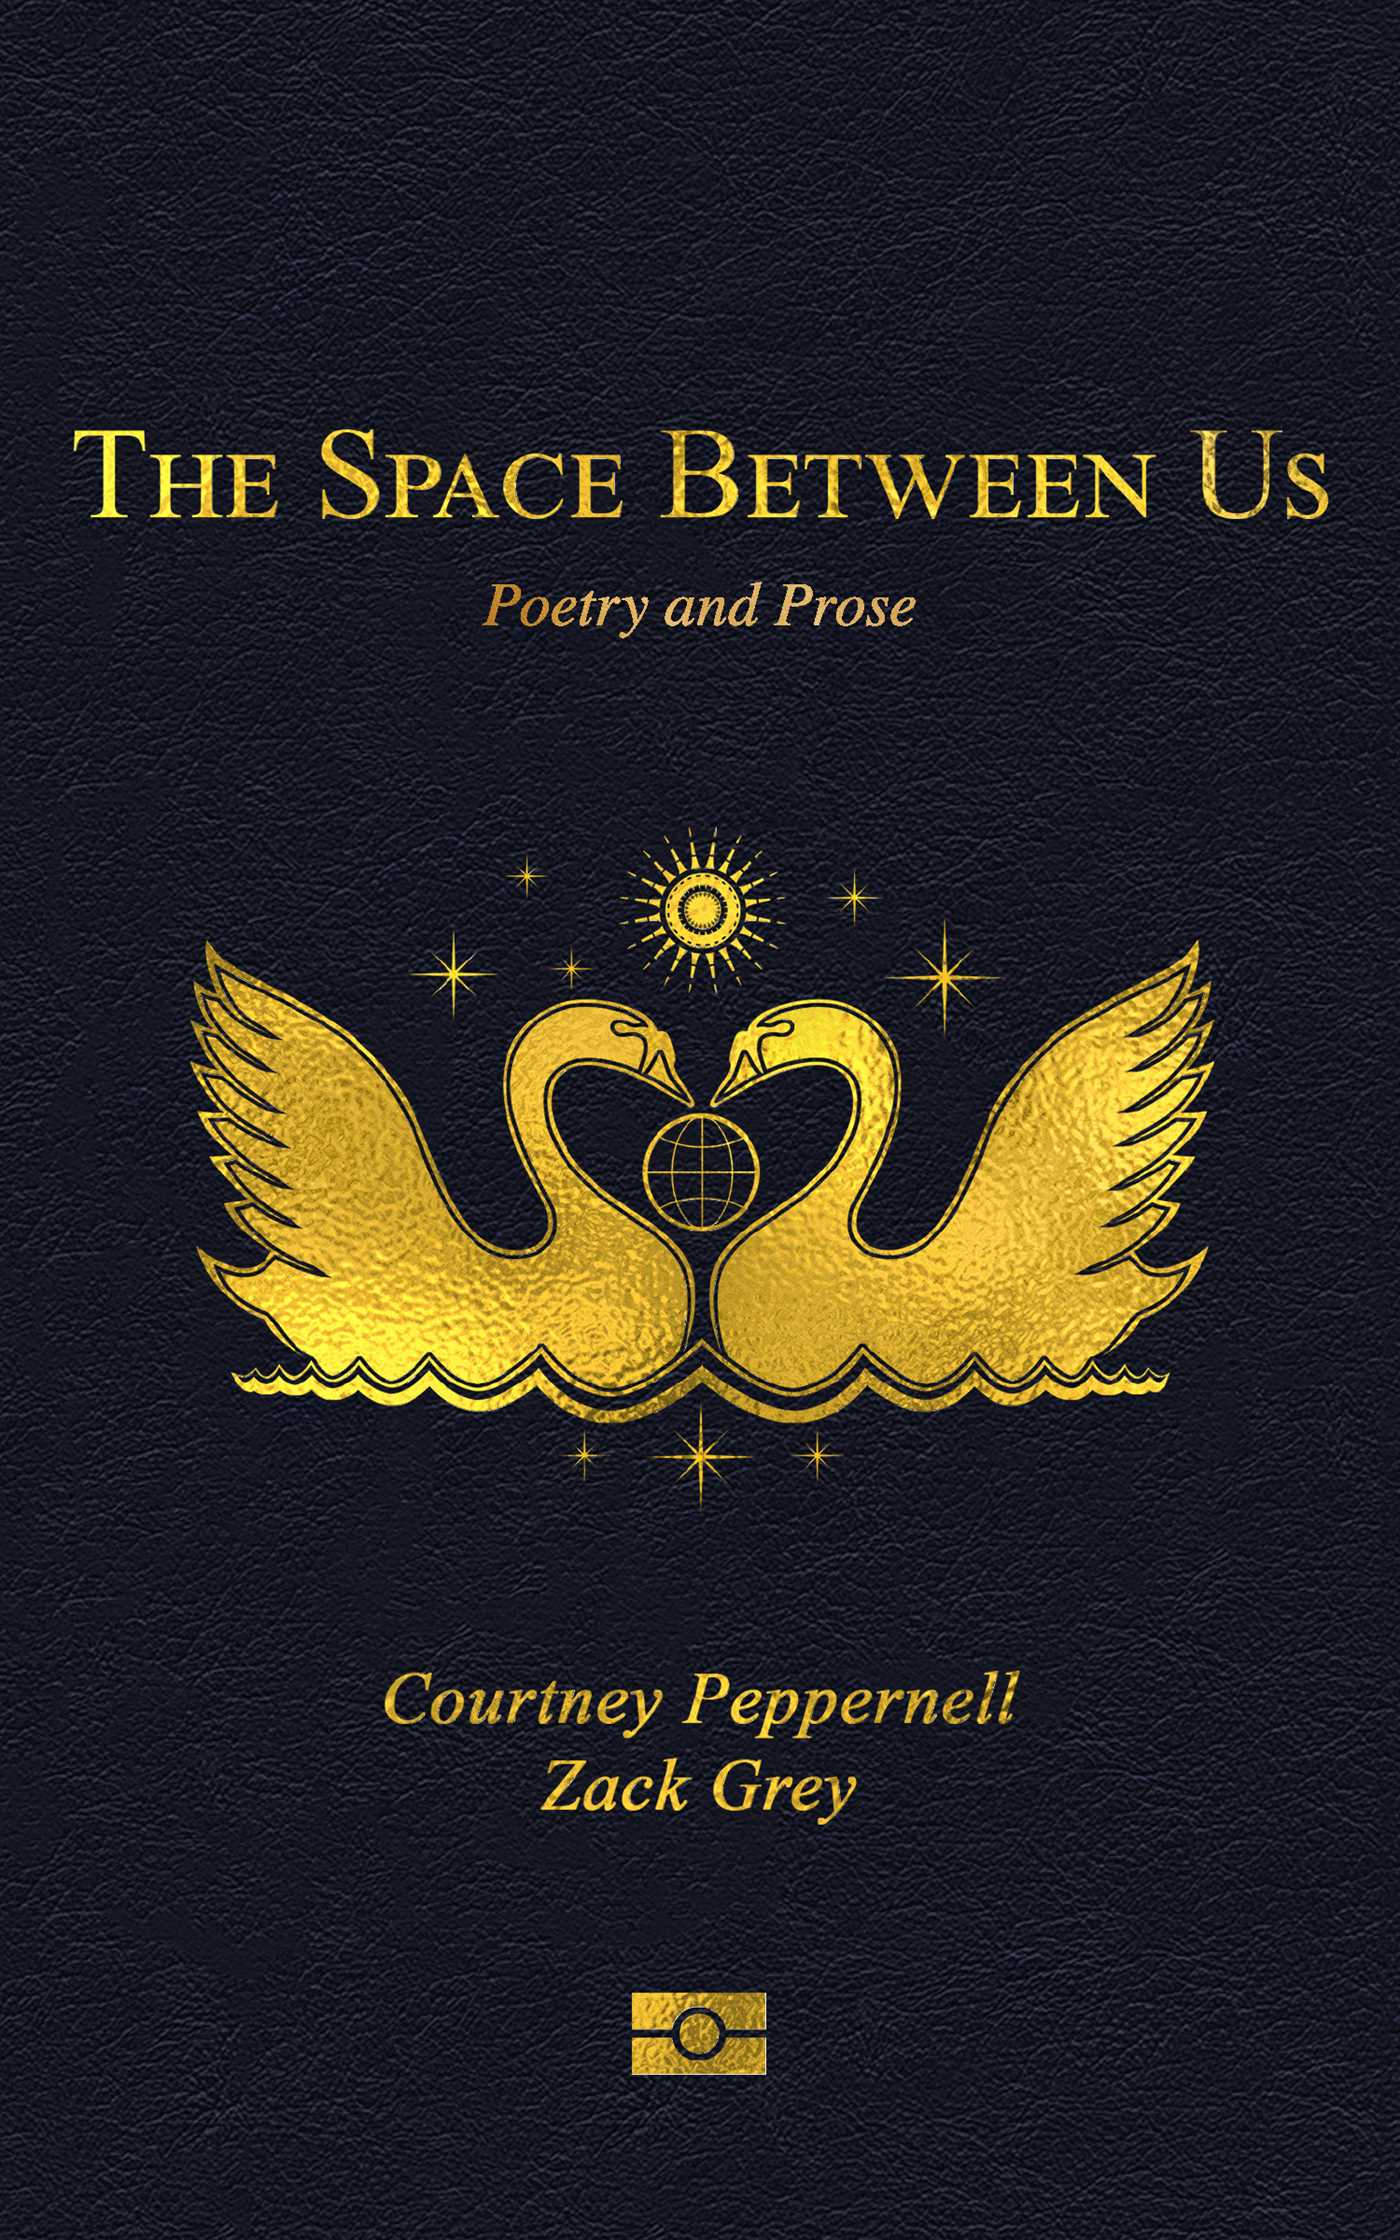 The Space Between Us: Poetry and Prose